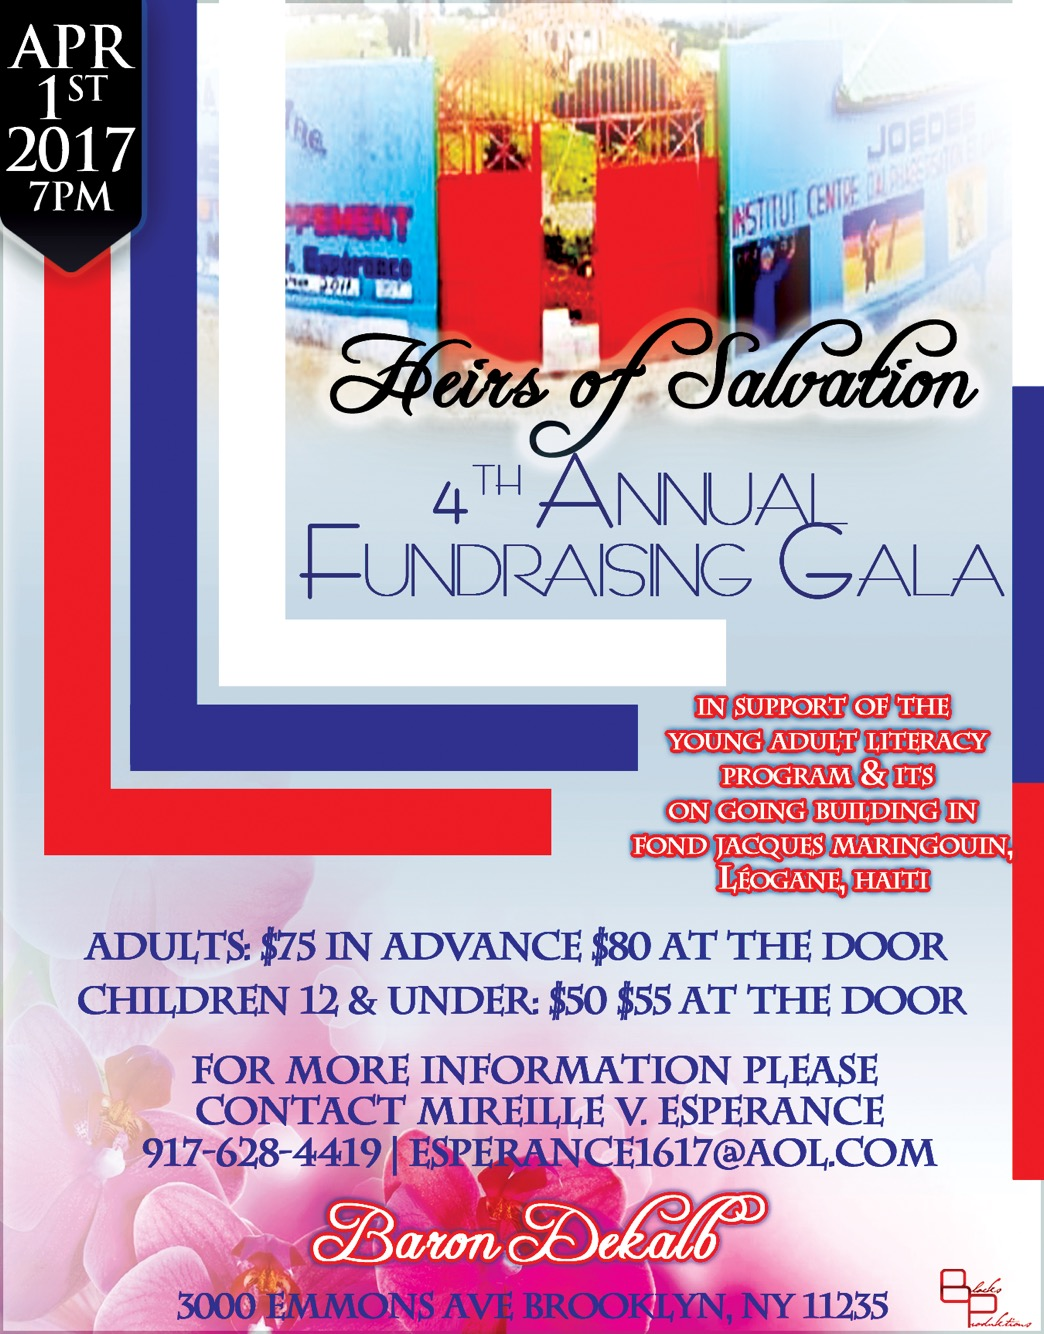 4th annual fundraising gala